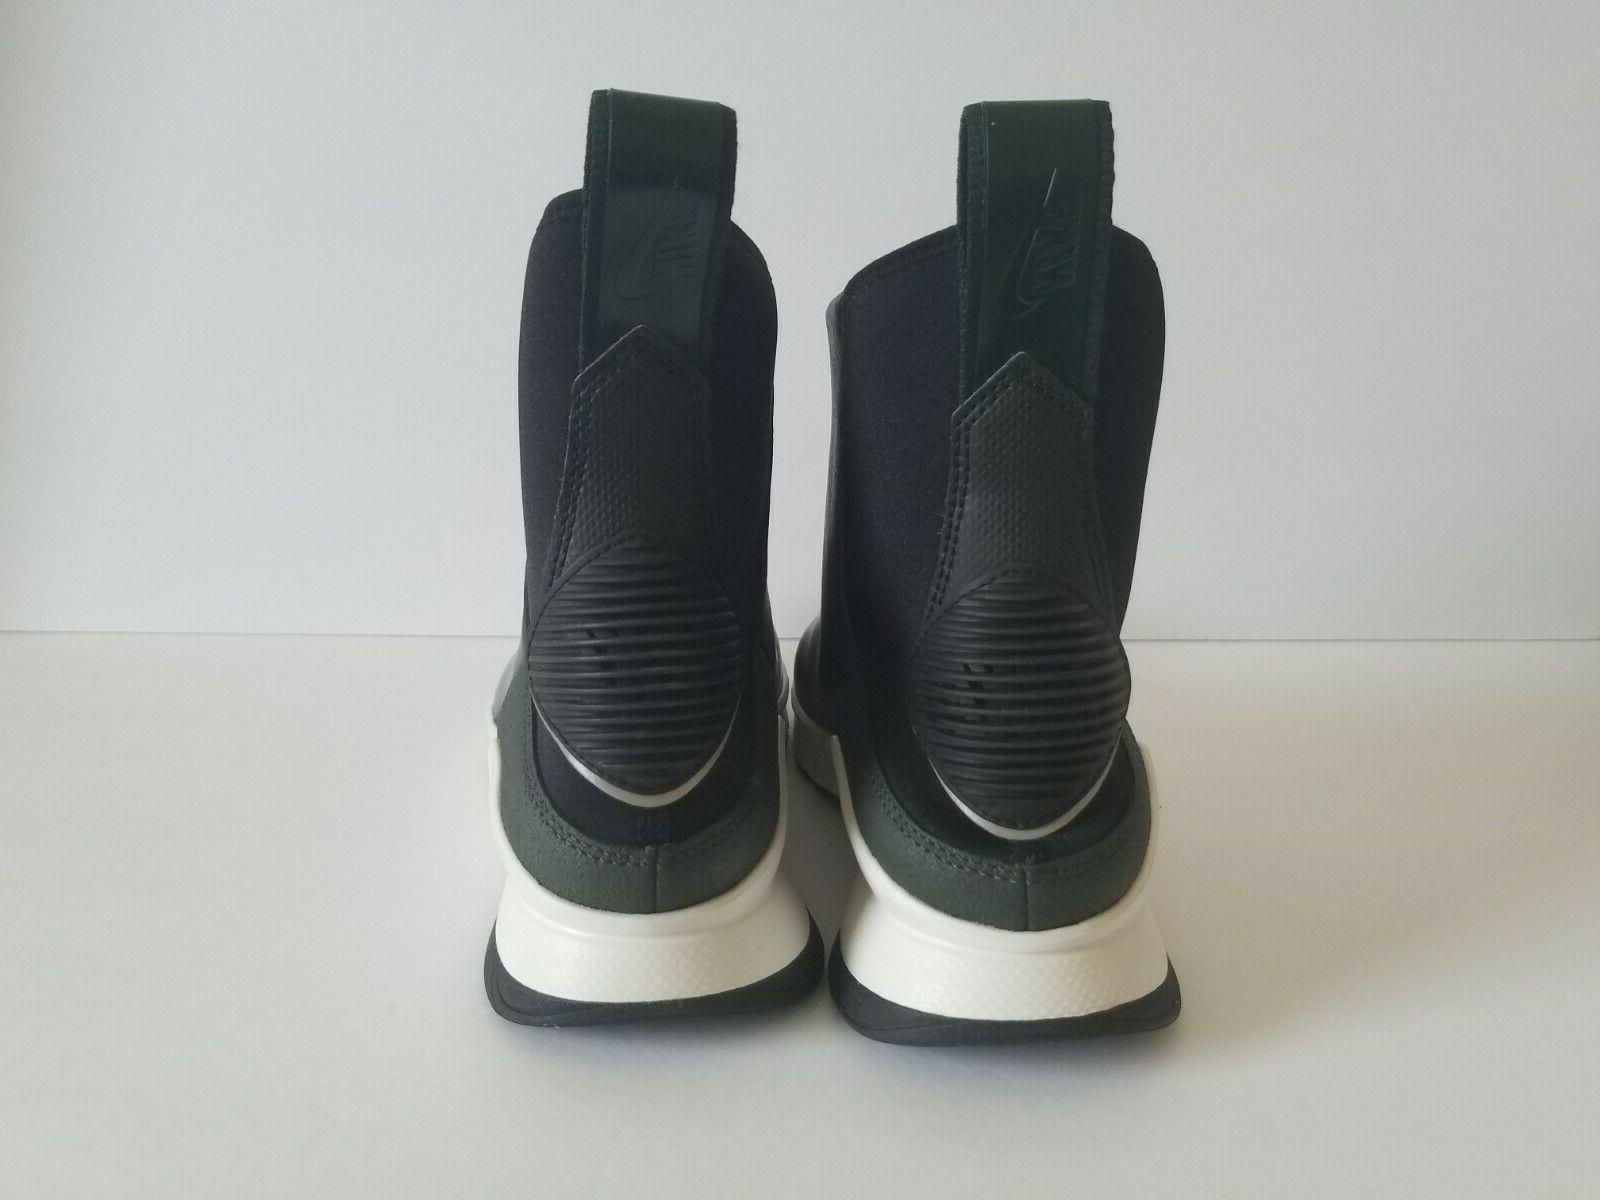 Nike Womens Rivah Premium Leather Waterproof Wedge Boots Size 6.5